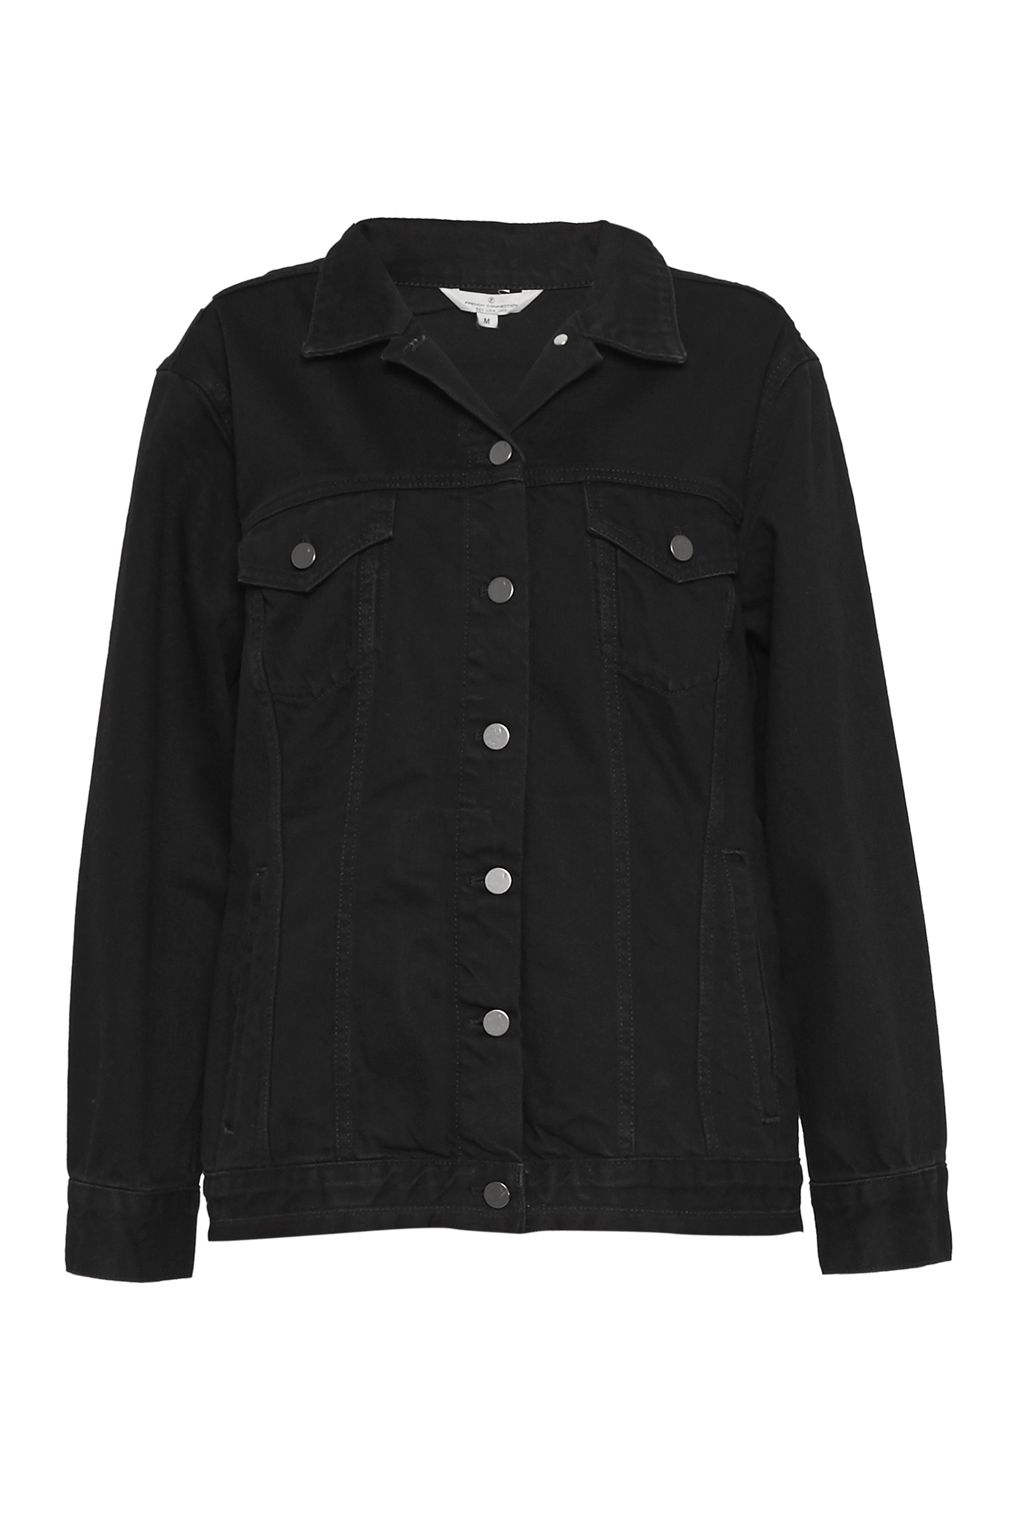 French Connection Slouchy Western Denim Jacket, Black